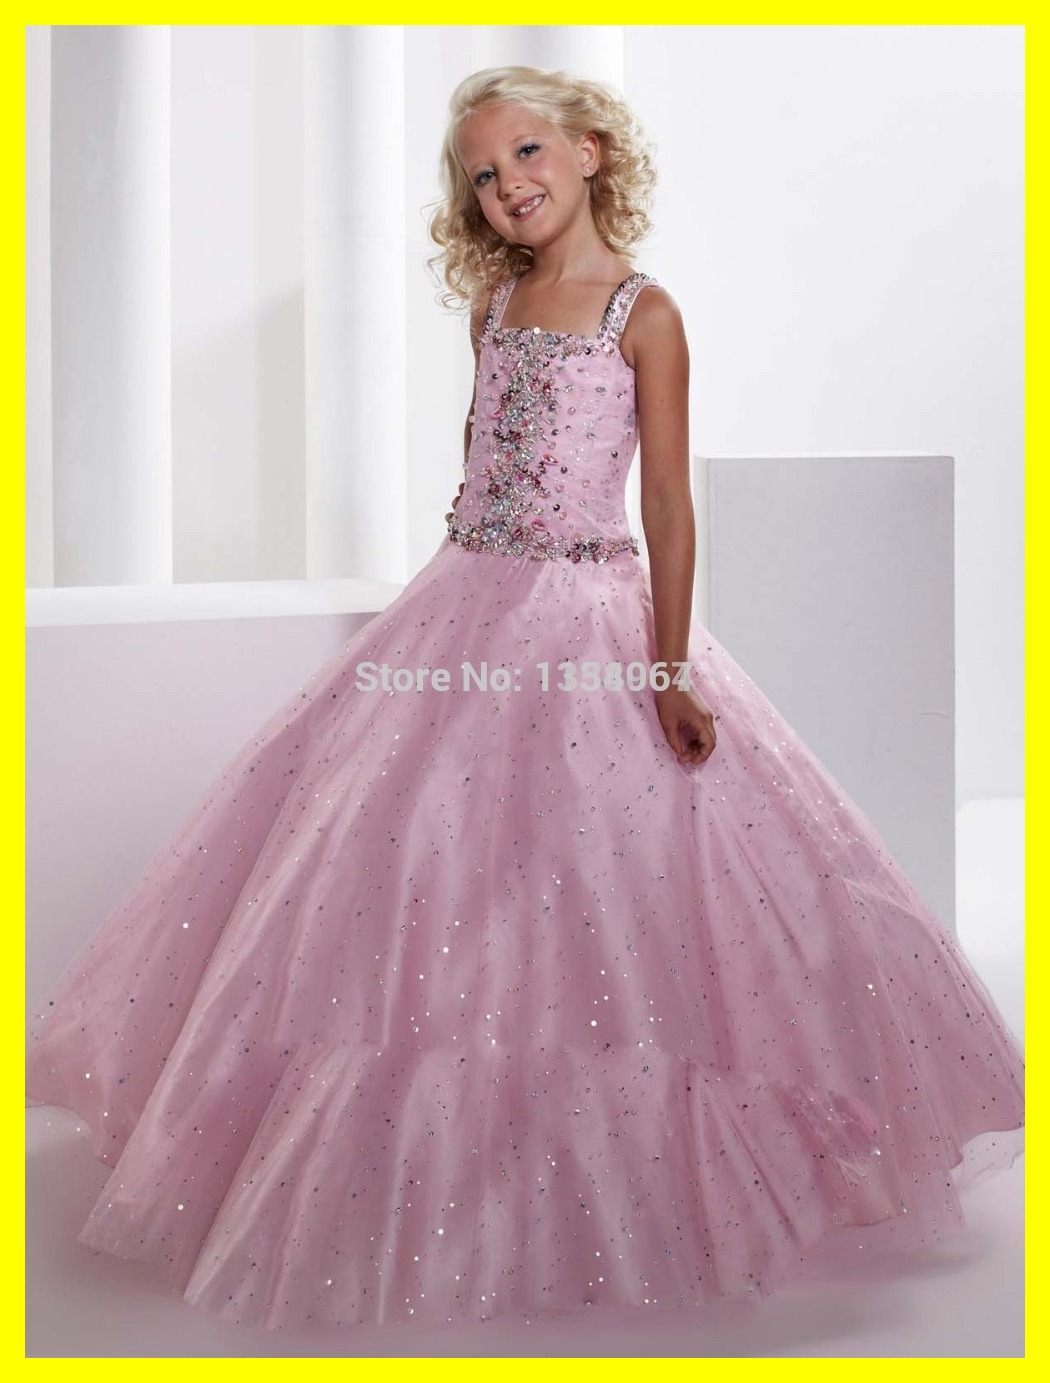 Pink Marie Flower Girl Dresses